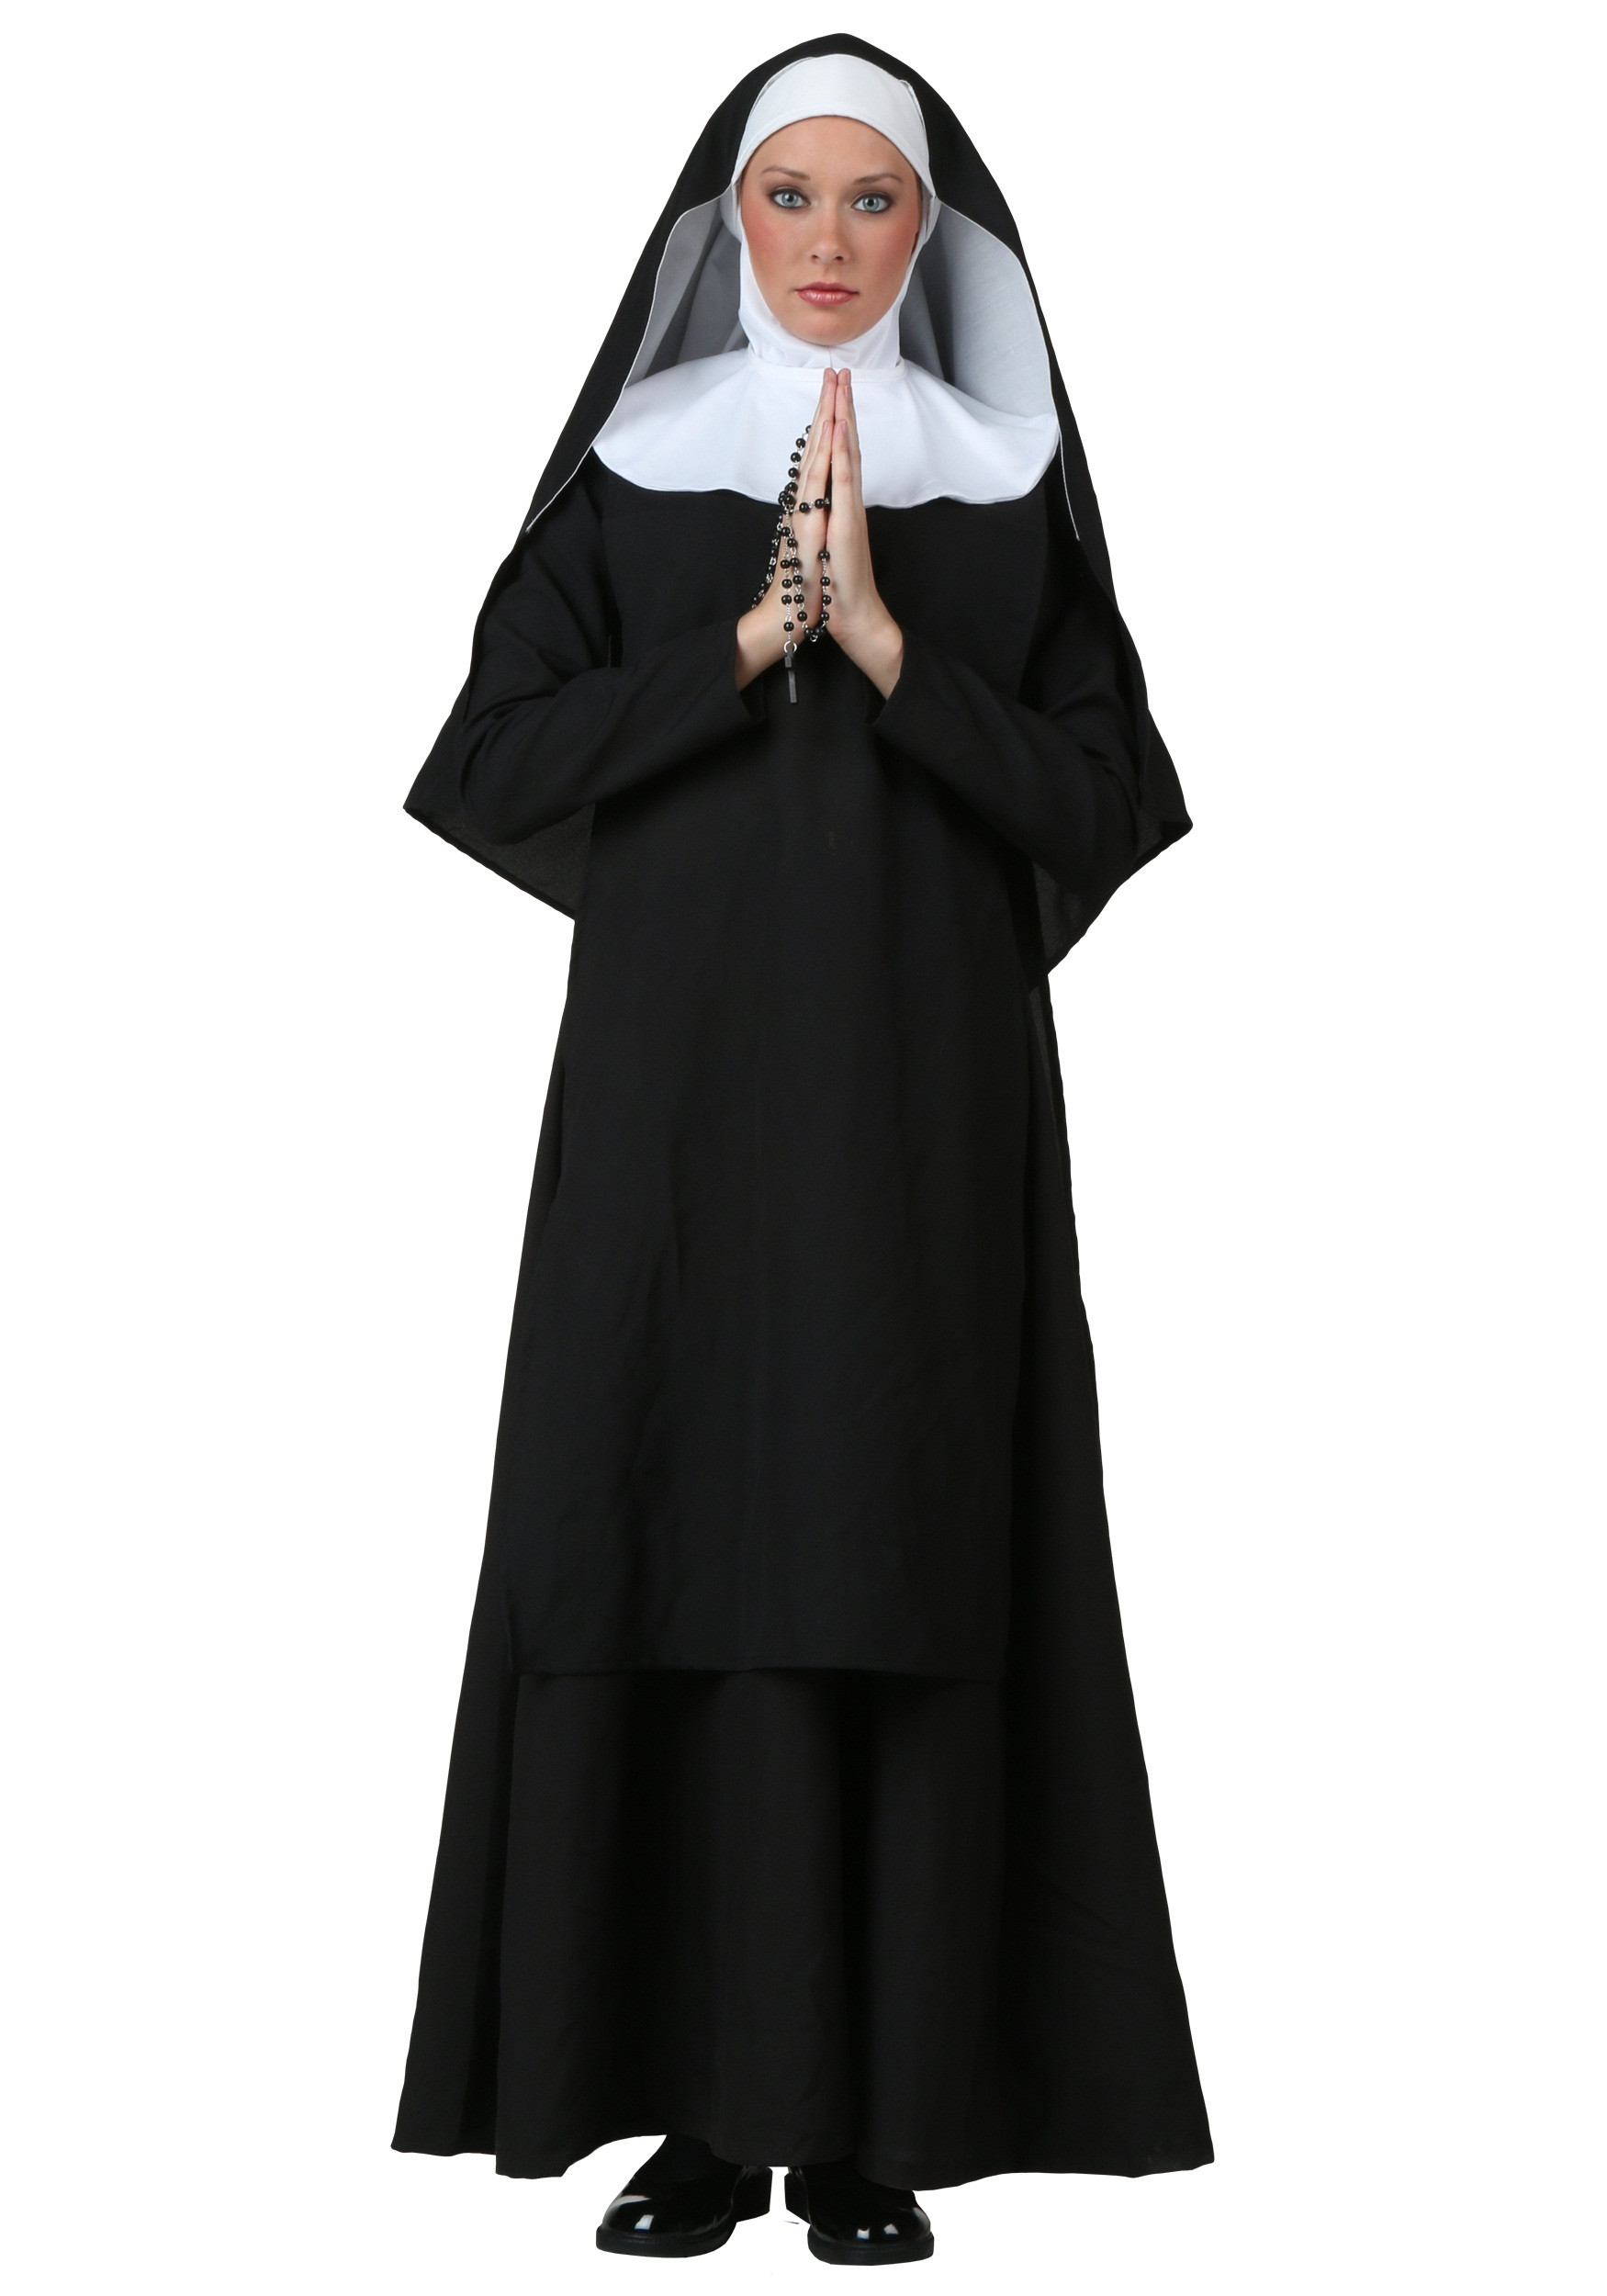 Best ideas about Nun Costume DIY . Save or Pin Plus Size Deluxe Nun Costume 1X 2X 3X 4X 5X Now.